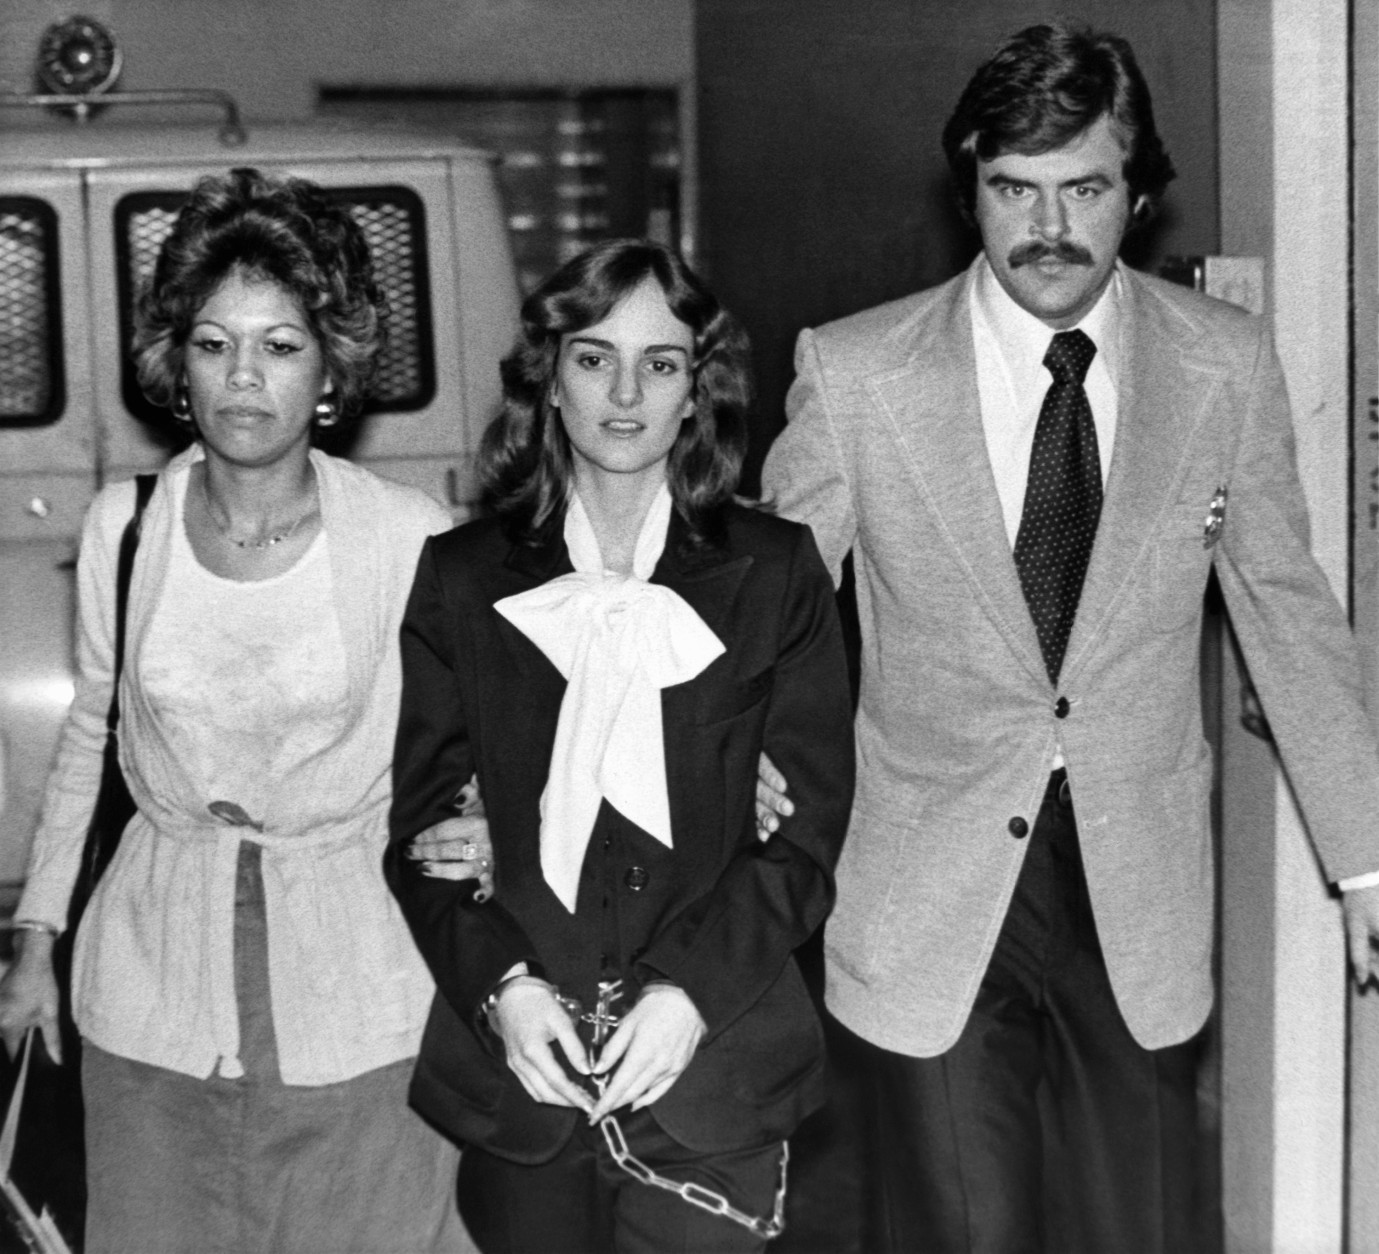 U.S. marshals escort Patricia Hearst from San Francisco's Federal Building in San Francisco, Feb. 3, 1976, where jury selection continued in her bank robbery trial. The jury is expected to be seated on Tuesday, raising the possibility the first testimony would be hears on Wednesday – the second anniversary of Miss Hearst's kidnapping by the Symbionese Liberation Army. At left is Marshal Janey Jimenez, and at right is Marshal Mike Tarr. (AP Photo)